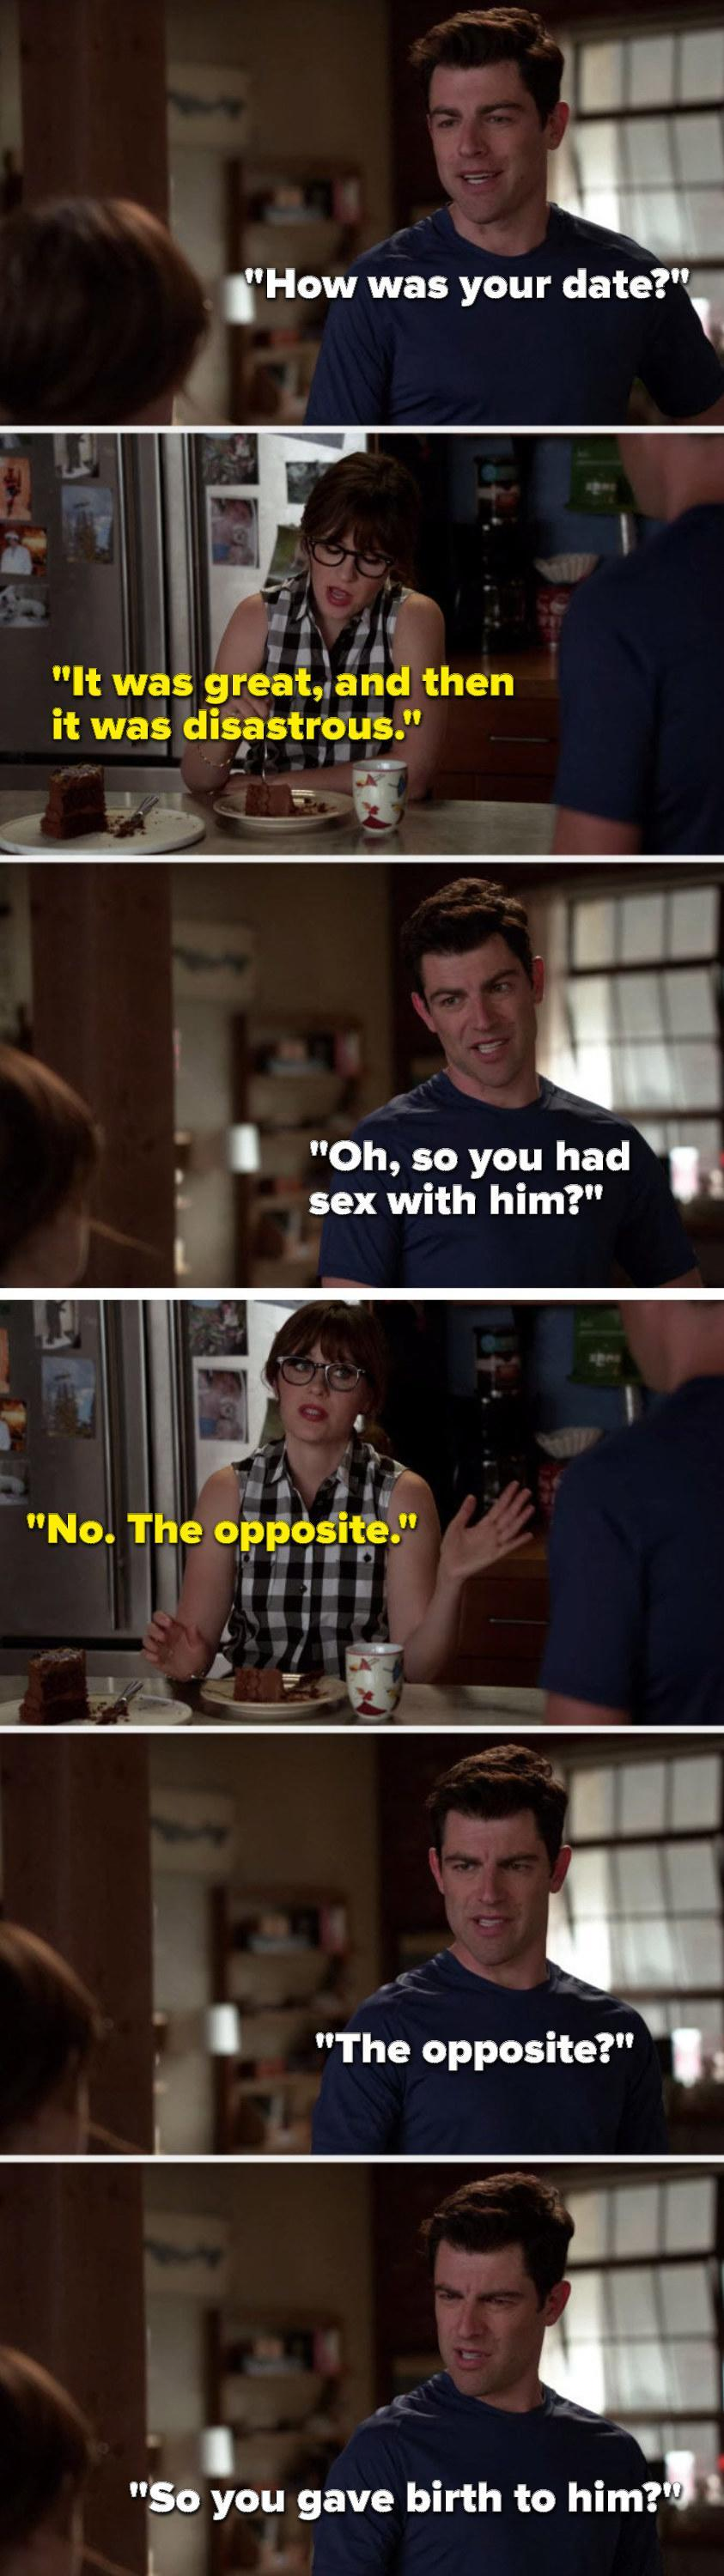 Schmidt says, How was your date, Jess says, It was great, and then it was disastrous, Schmidt says, Oh, so you had sex with him, Jess says, No, the opposite, and Schmidt asks, The opposite, so you gave birth to him